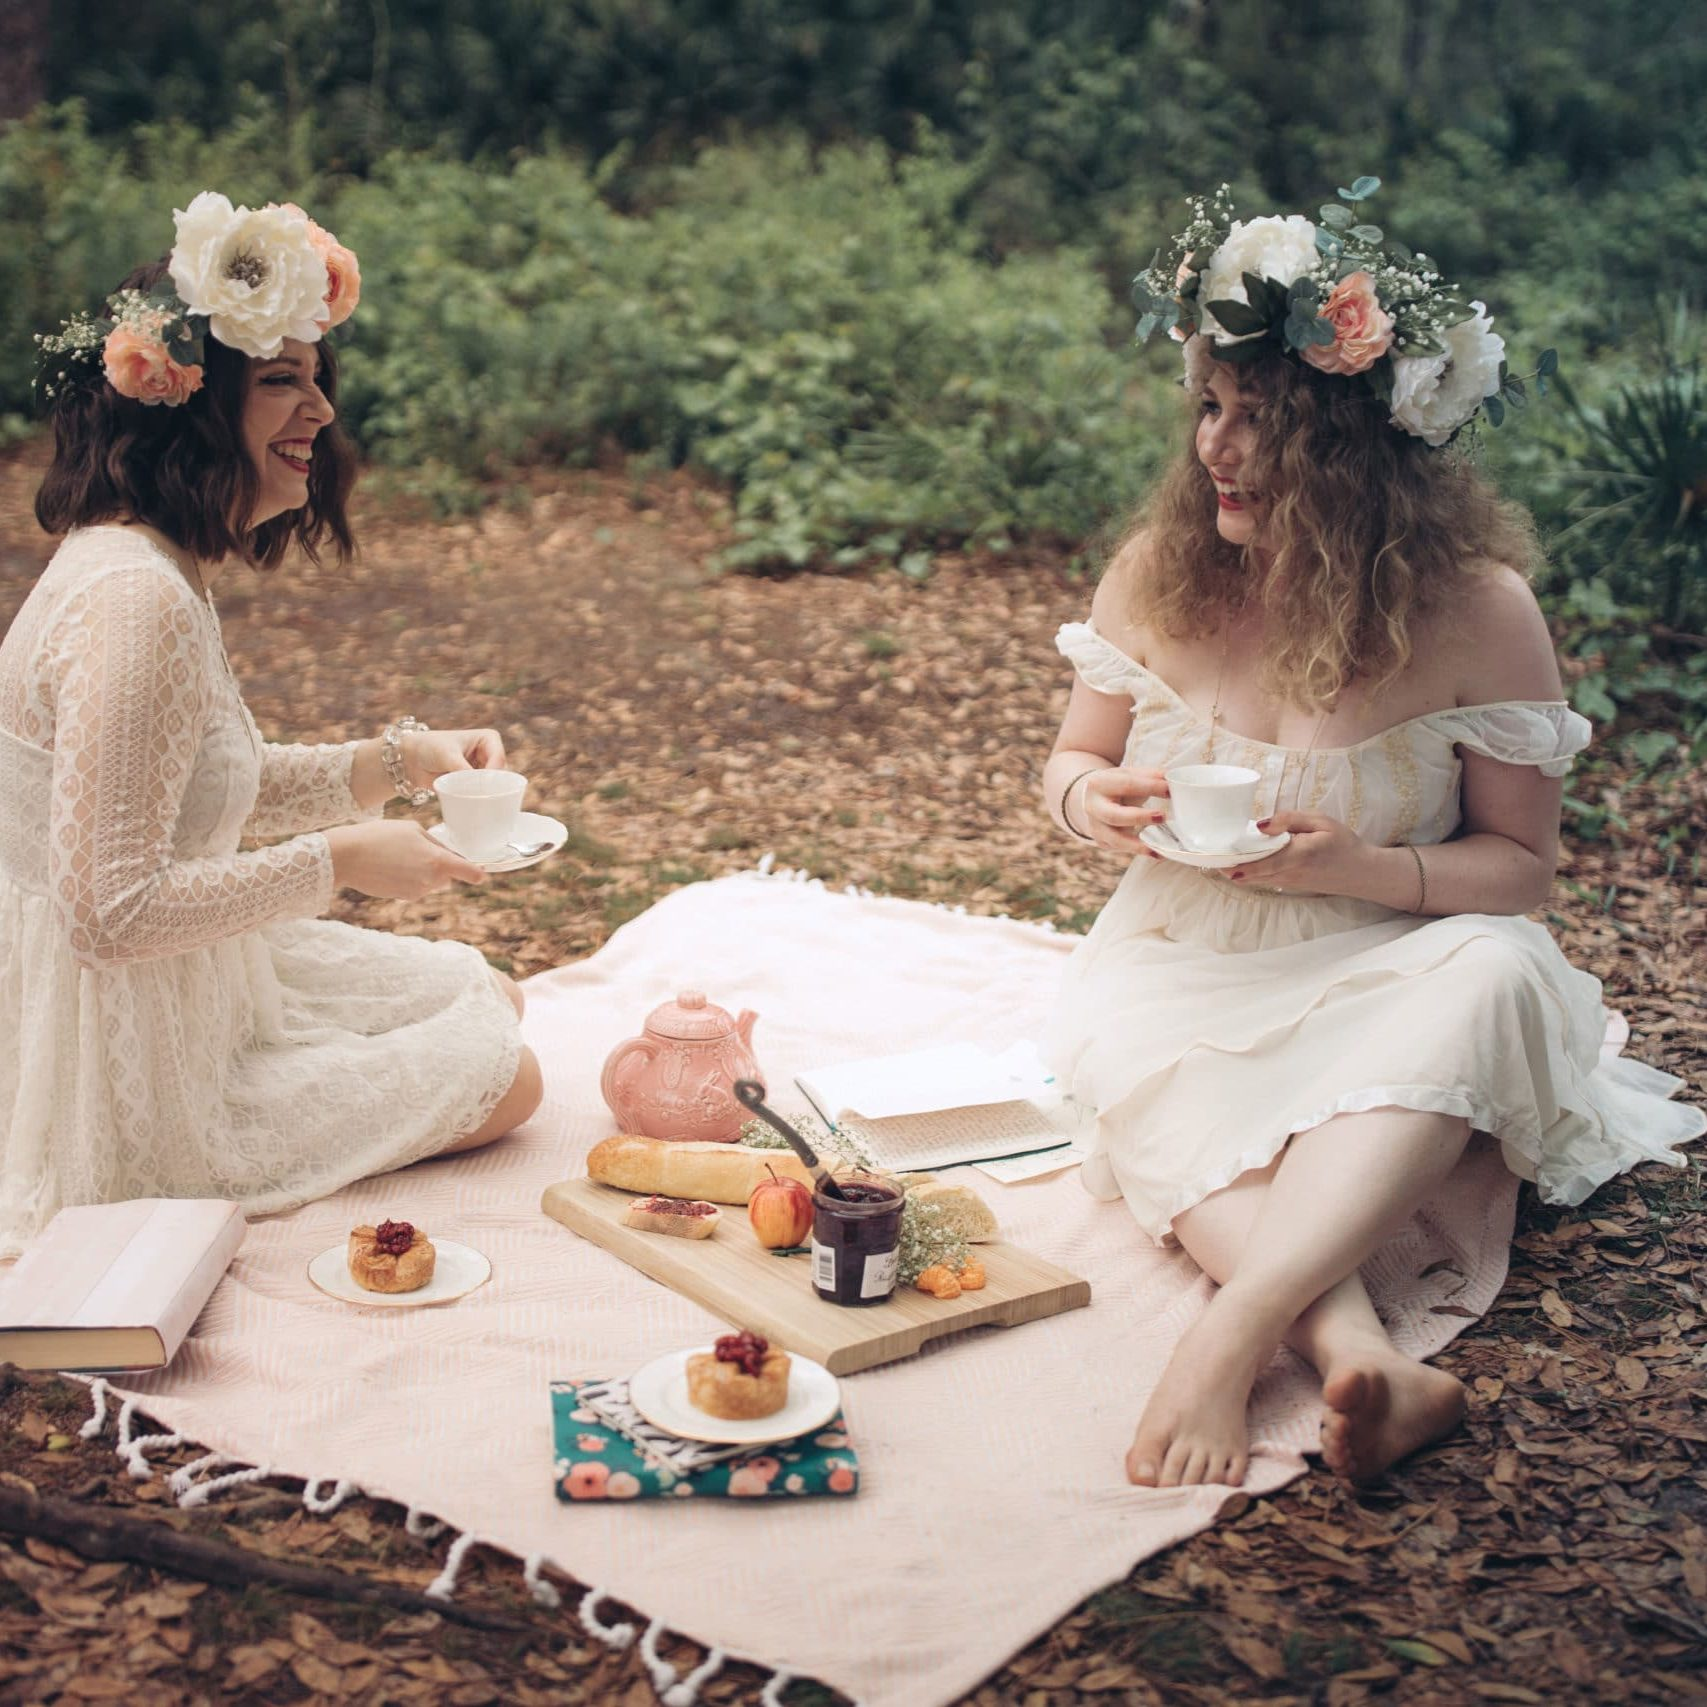 Empowered Princess Podcast Episode Cover Image Princess Picnic in the Forest Laughing Princesses Having Tea